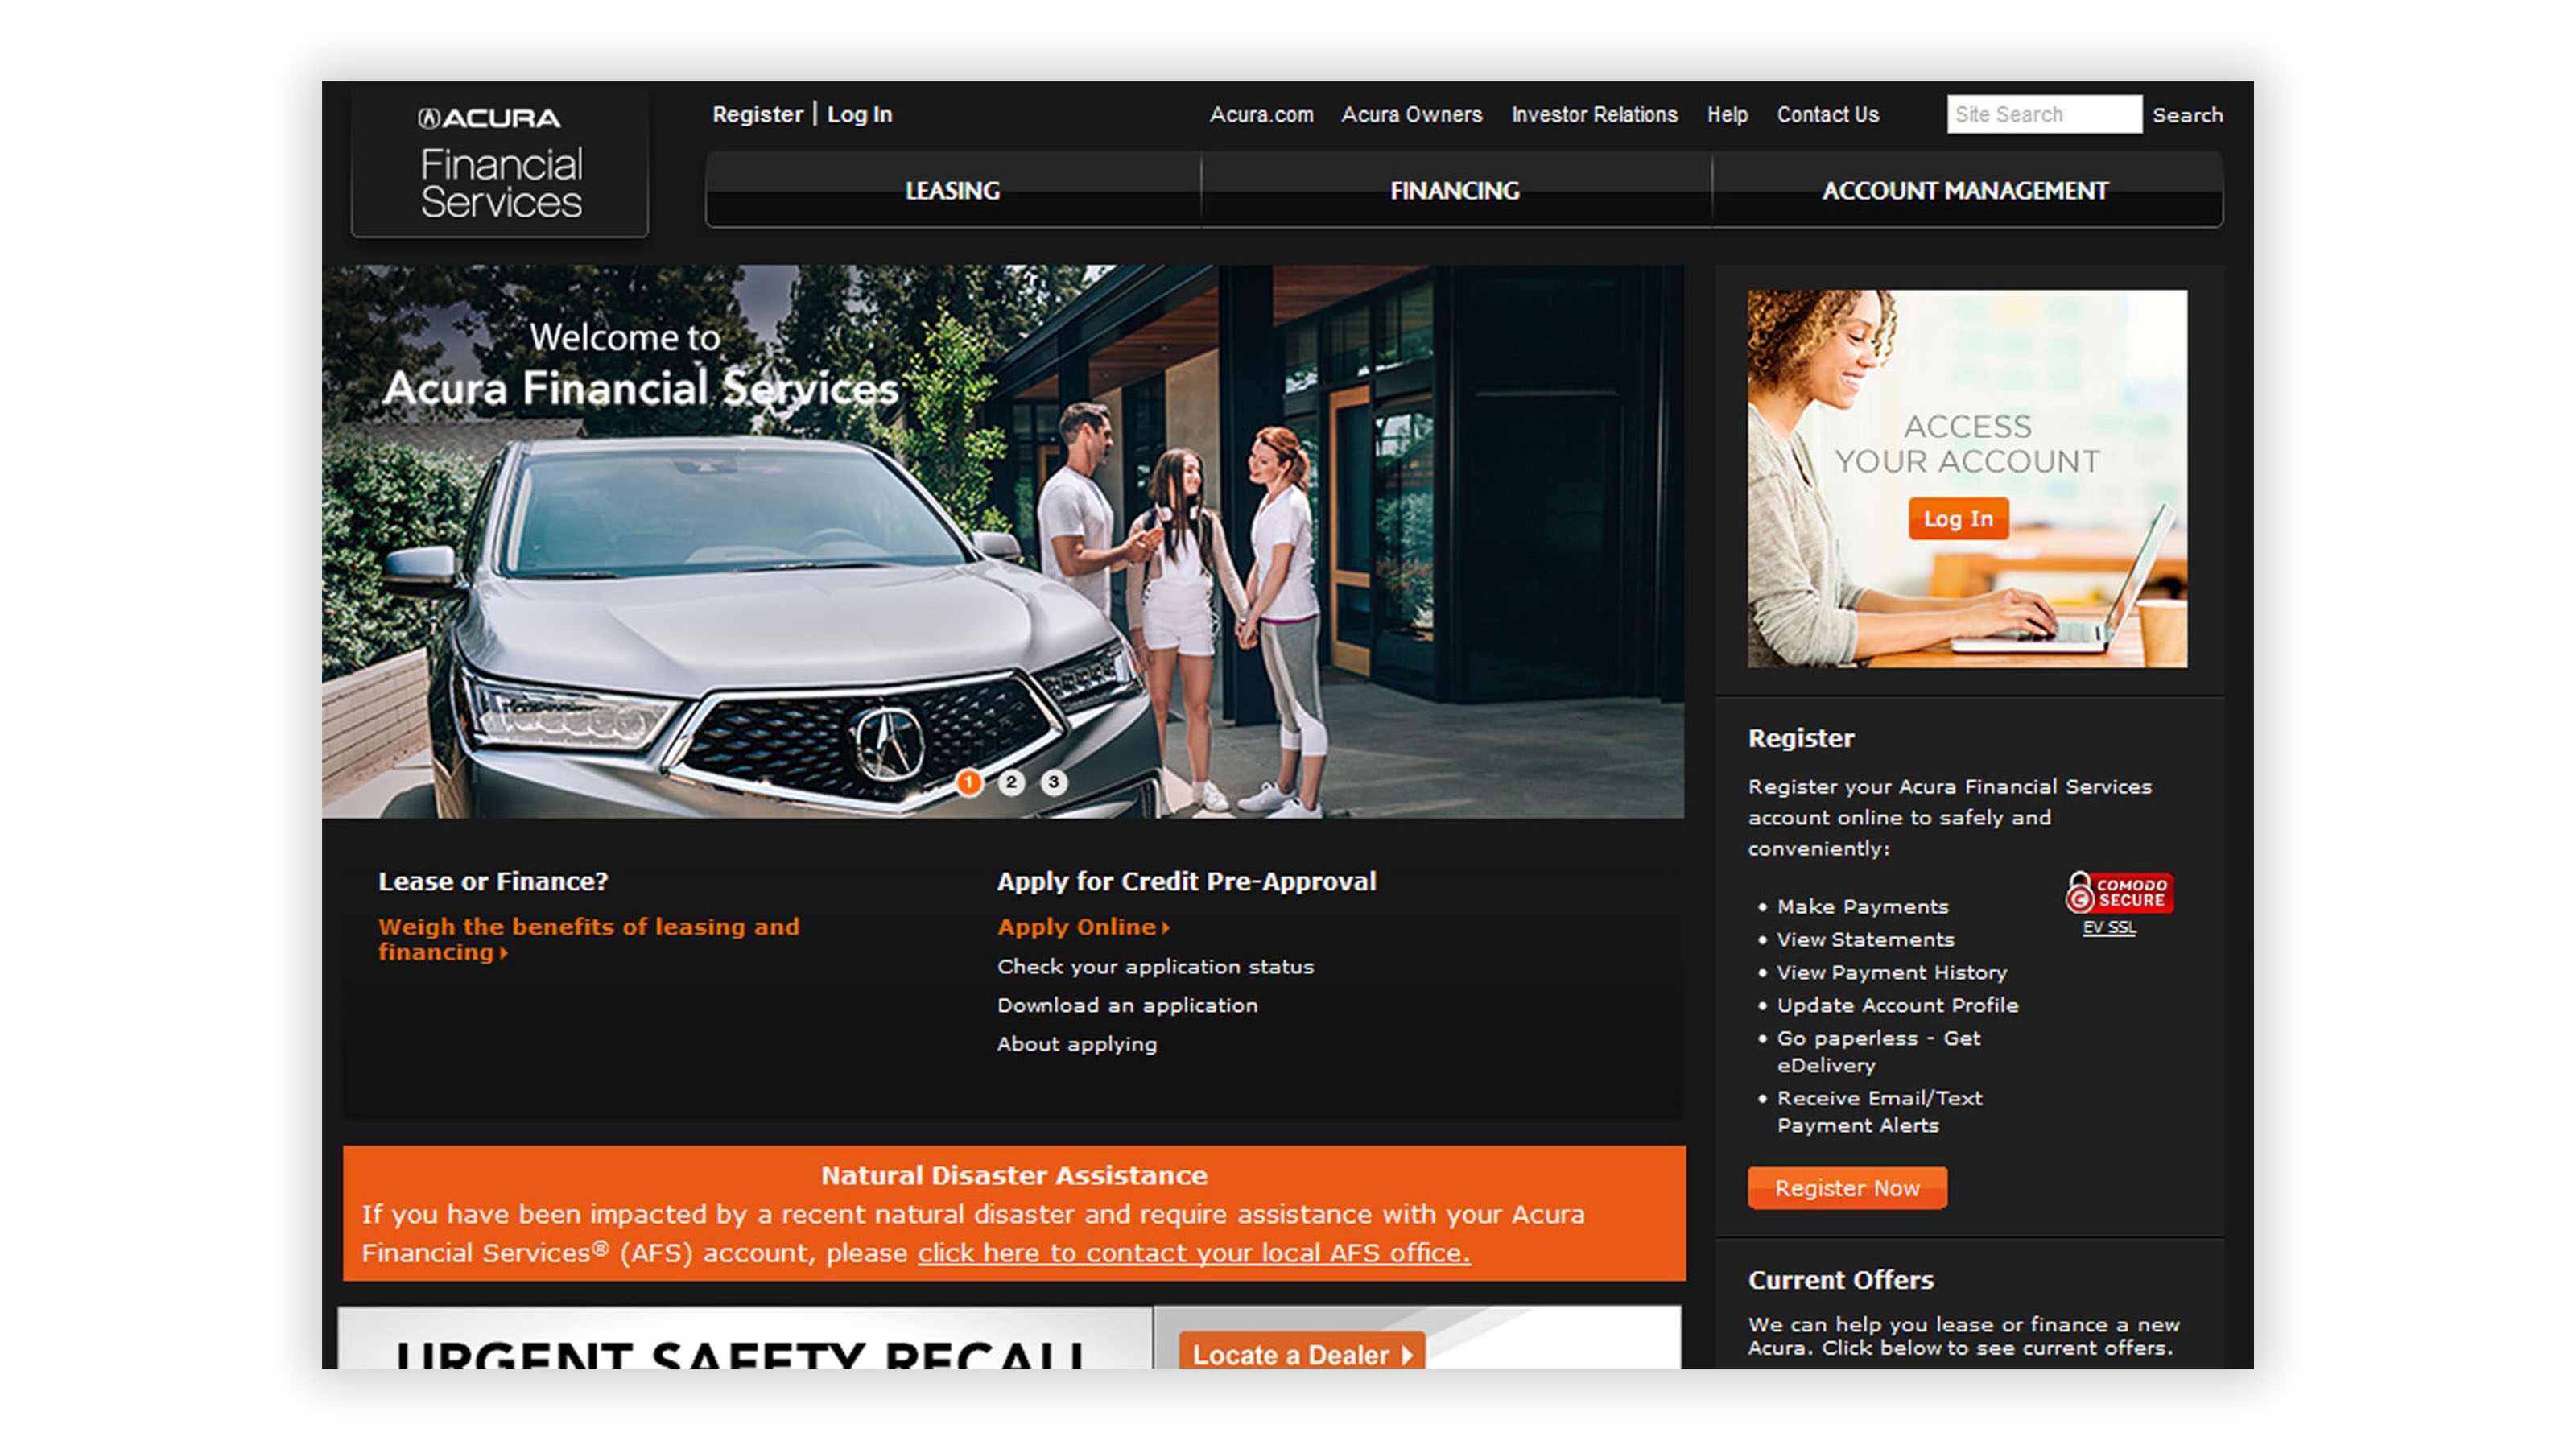 Acura financial services website